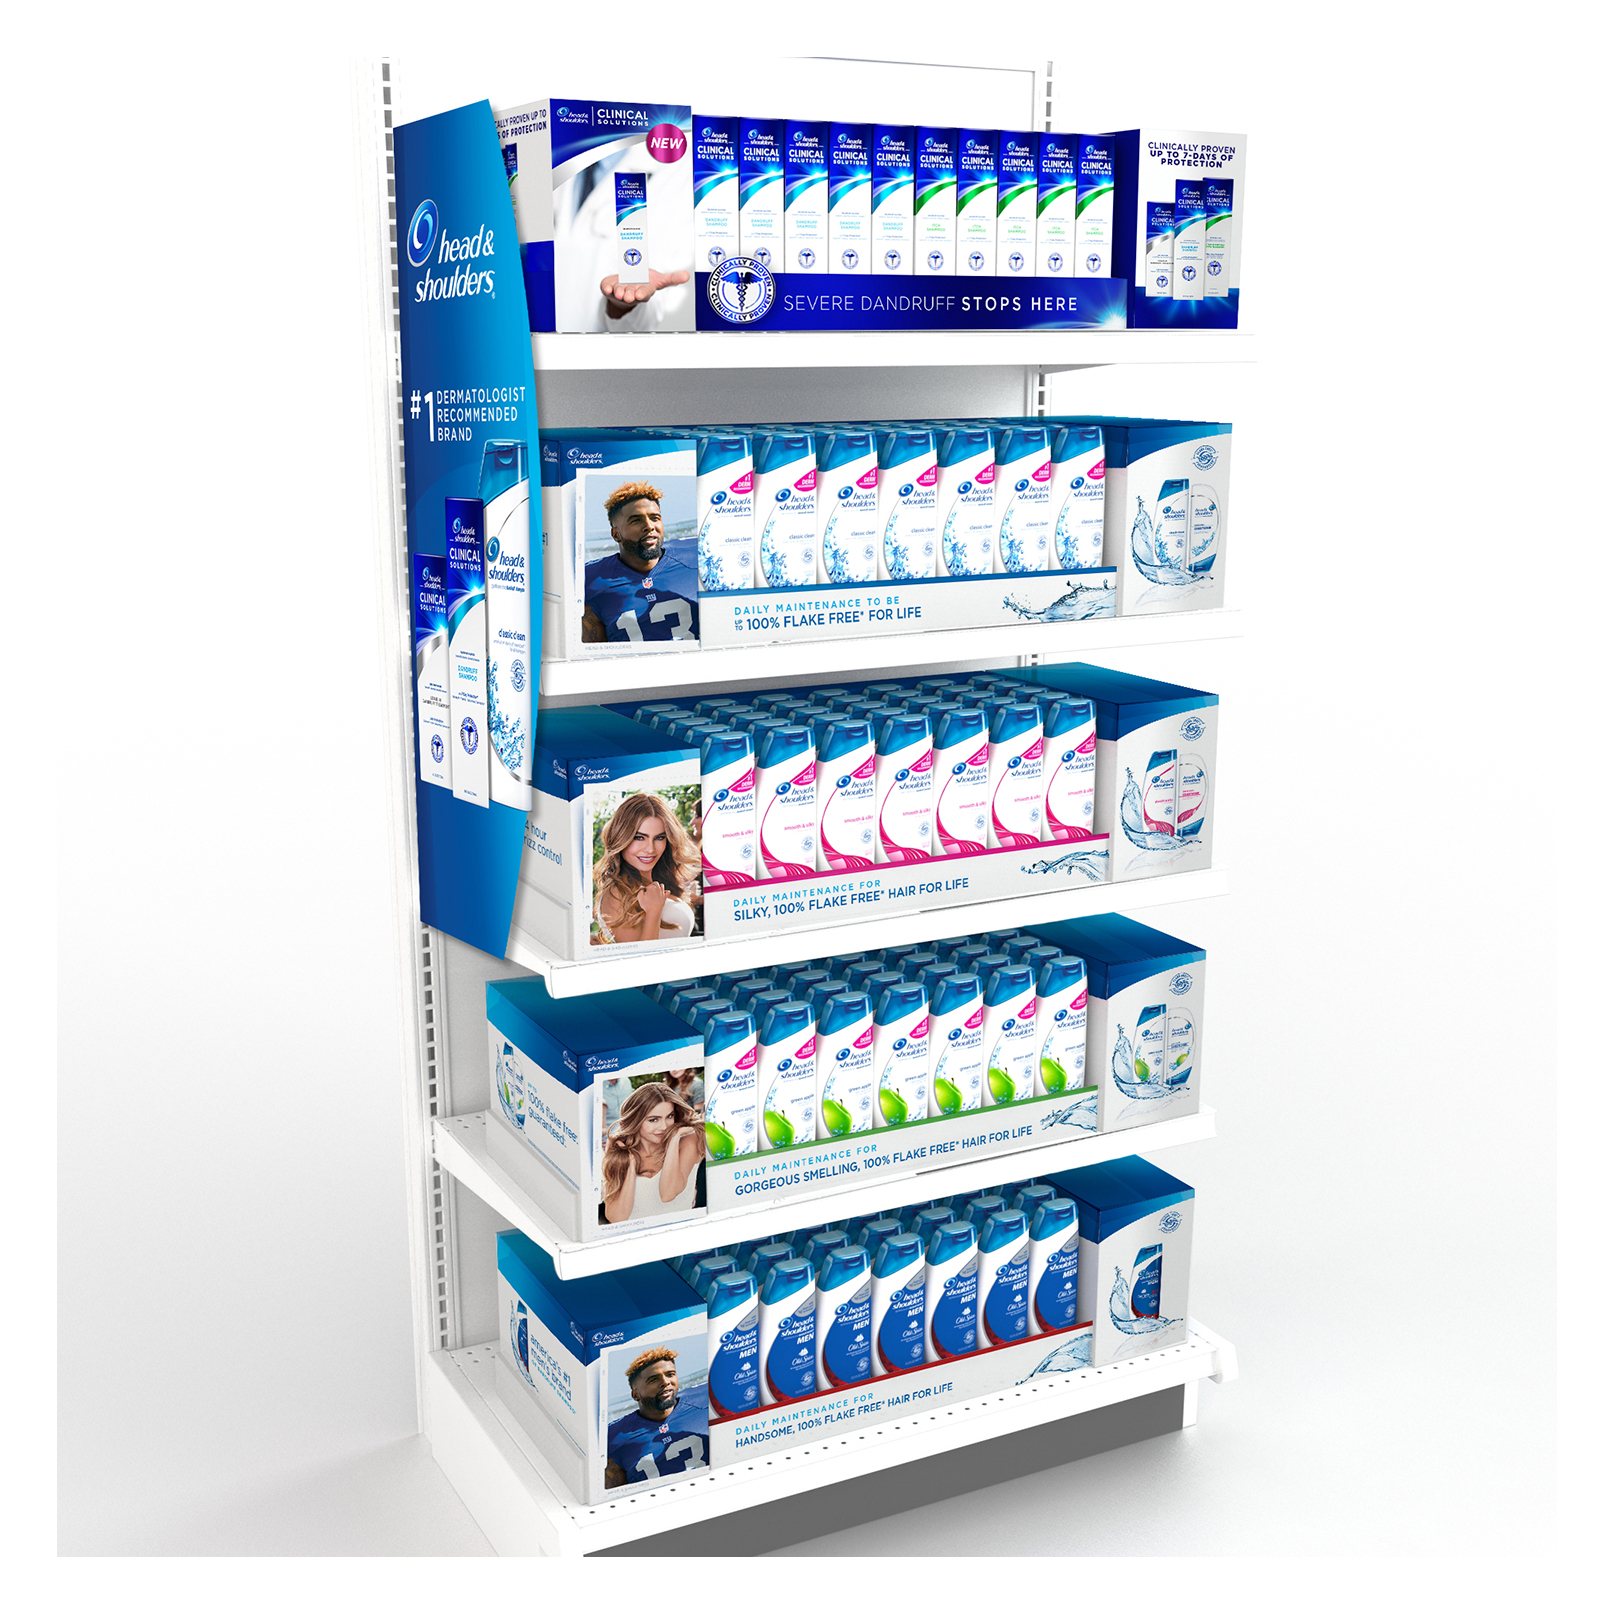 Endcap : A product family story highlighting the newest offering.